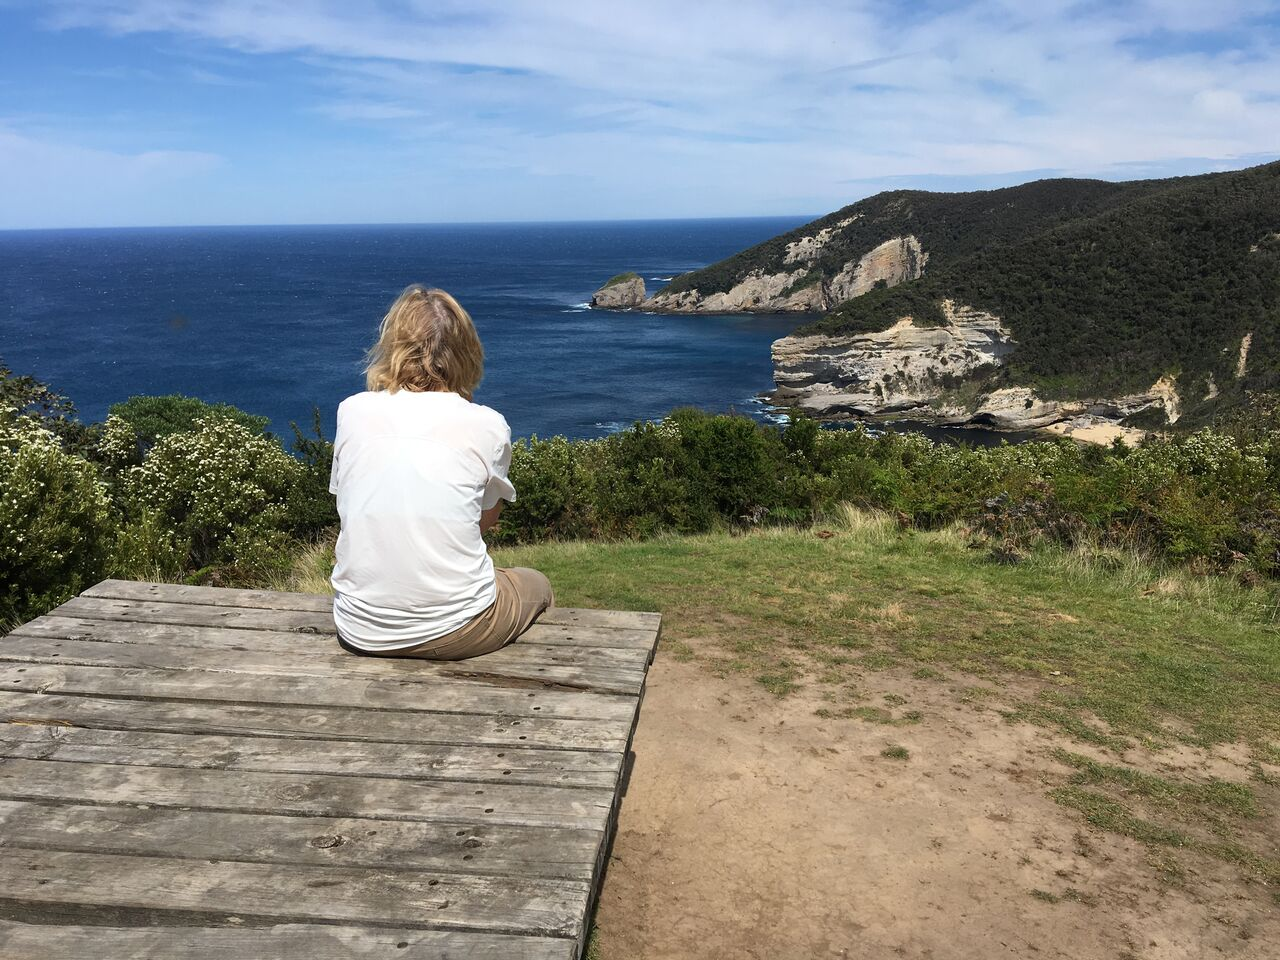 4 Day Self Guided Great Ocean Walk, 71km, 3 Nights close to walk, 1 night Apollo Bay, private room, transfers, 12 Apostles